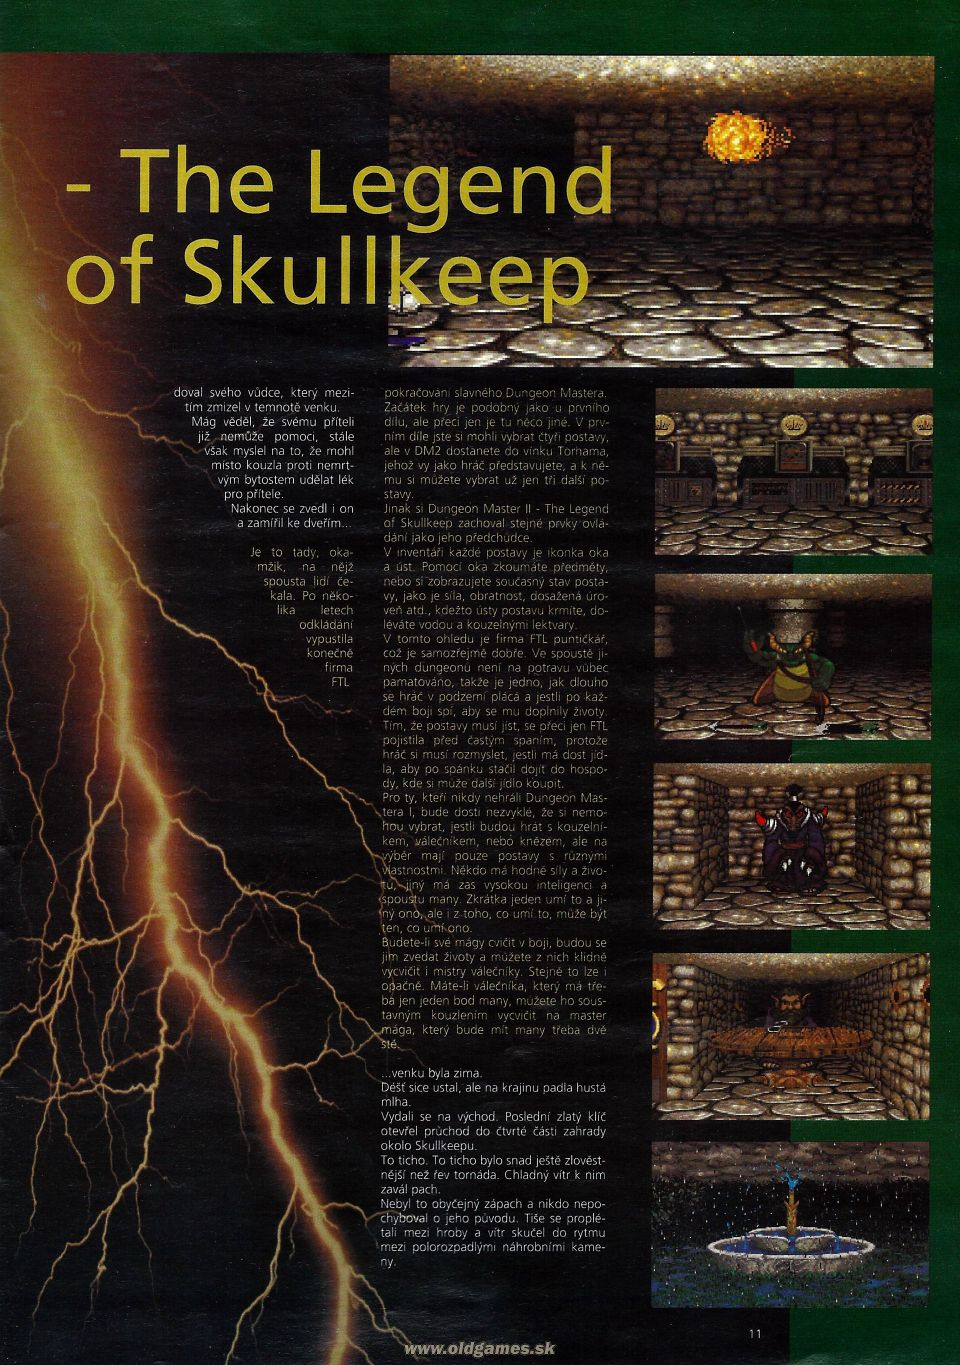 Dungeon Master II for PC Review published in Czech magazine 'Level', Issue #8 September 1995, Page 11